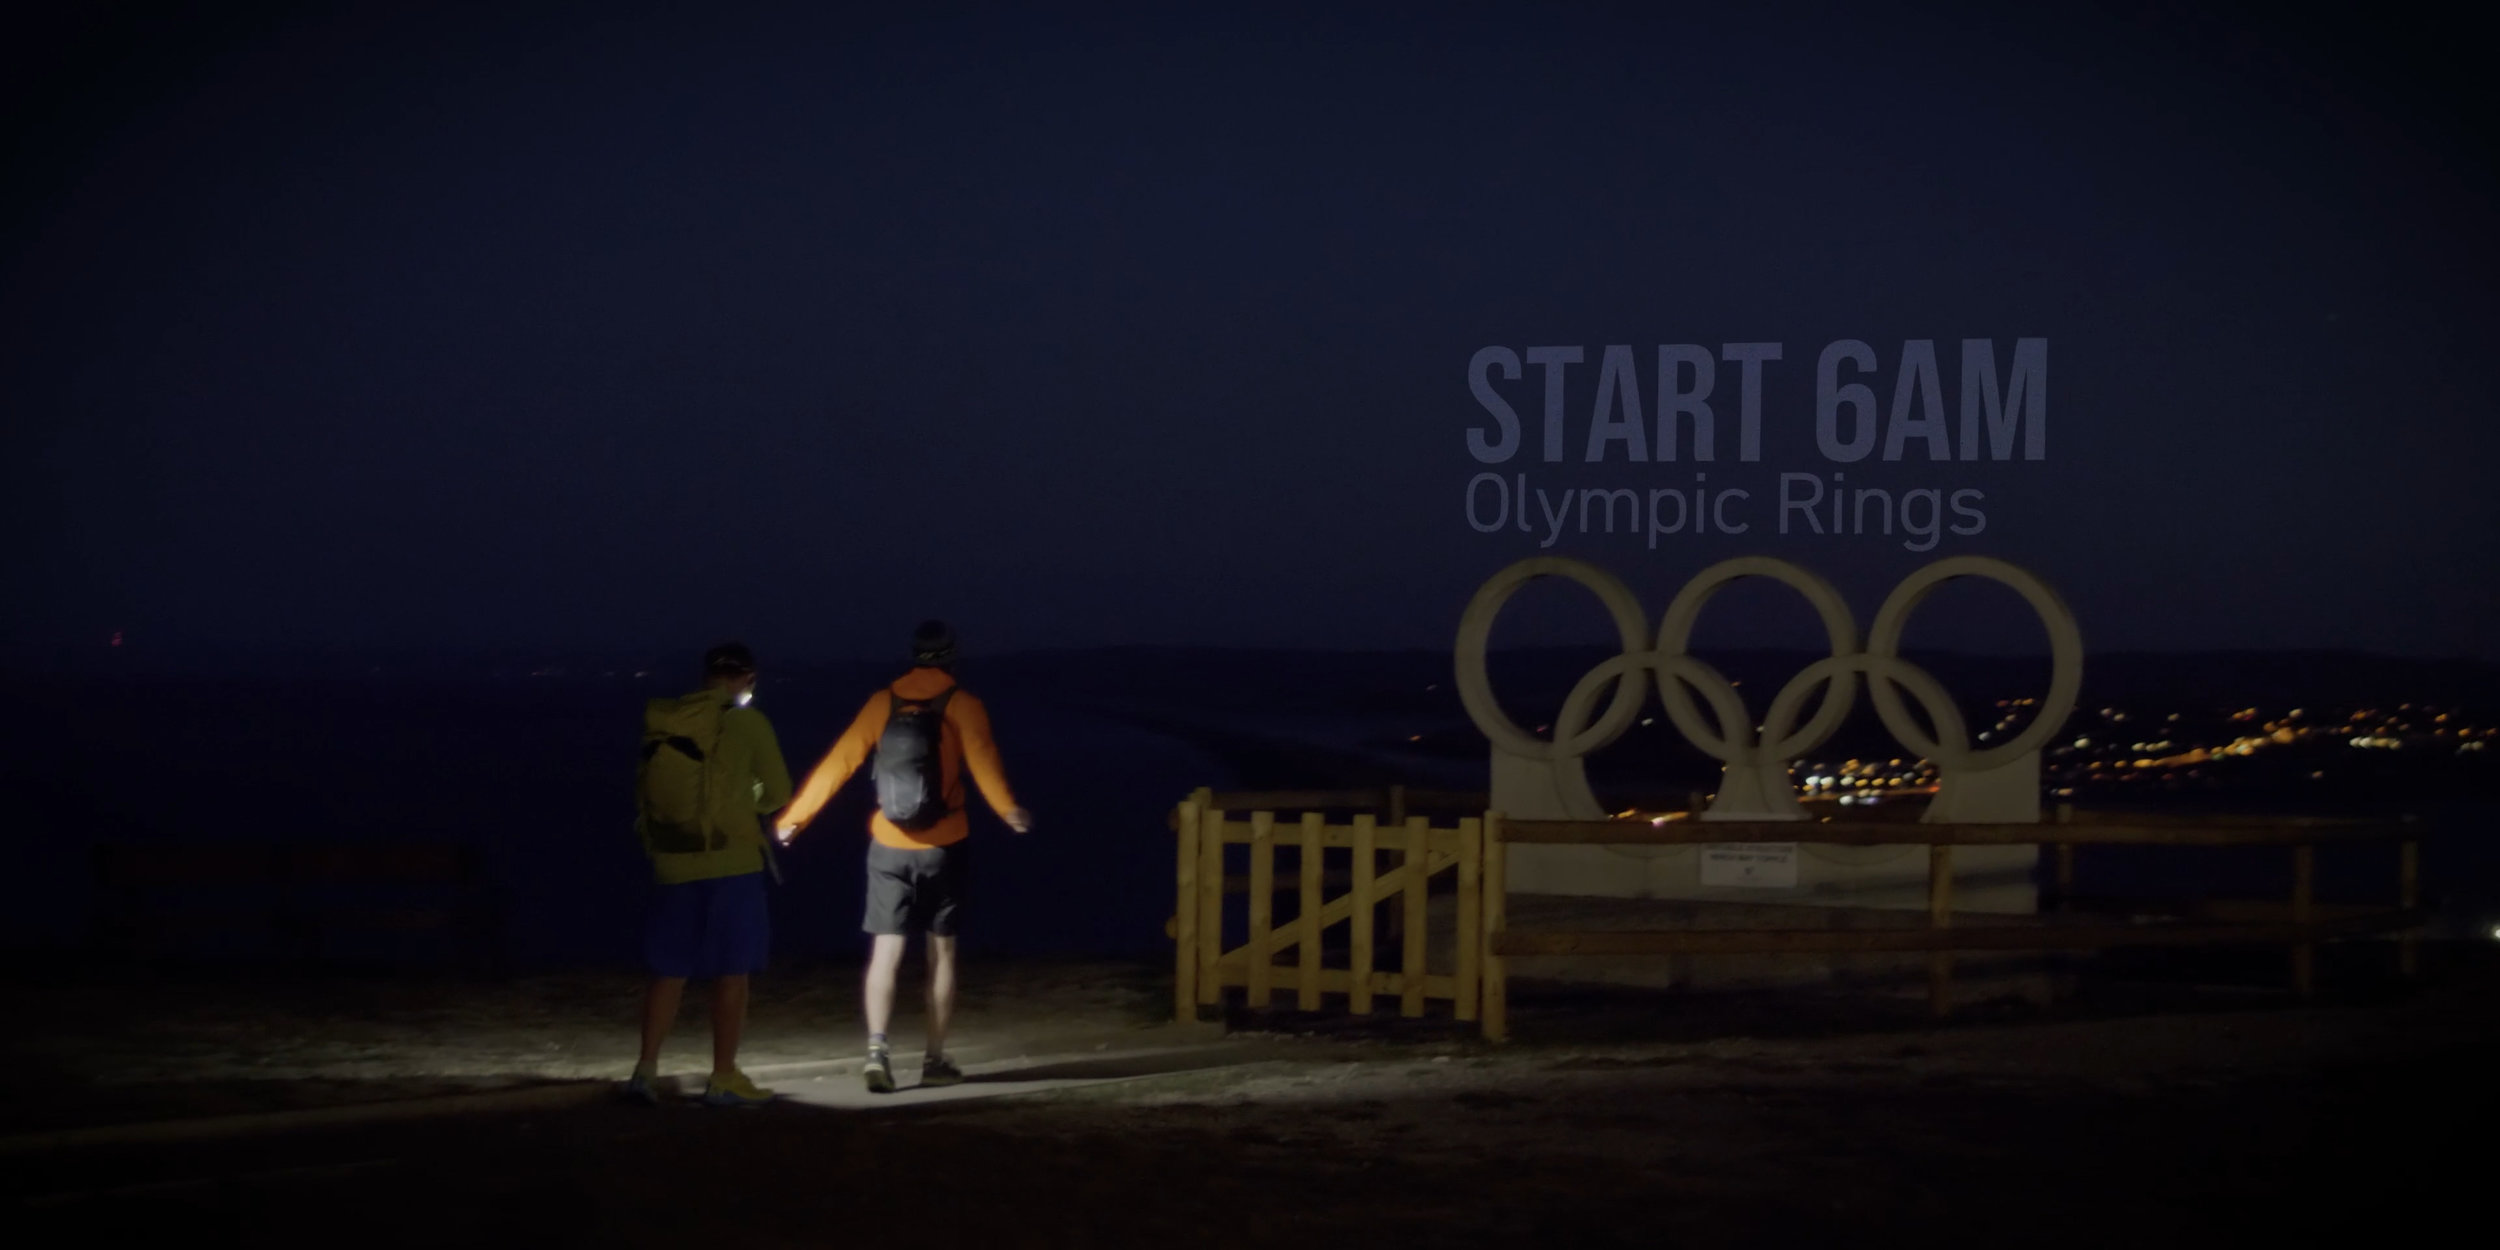 The start line by the Olympic Rings